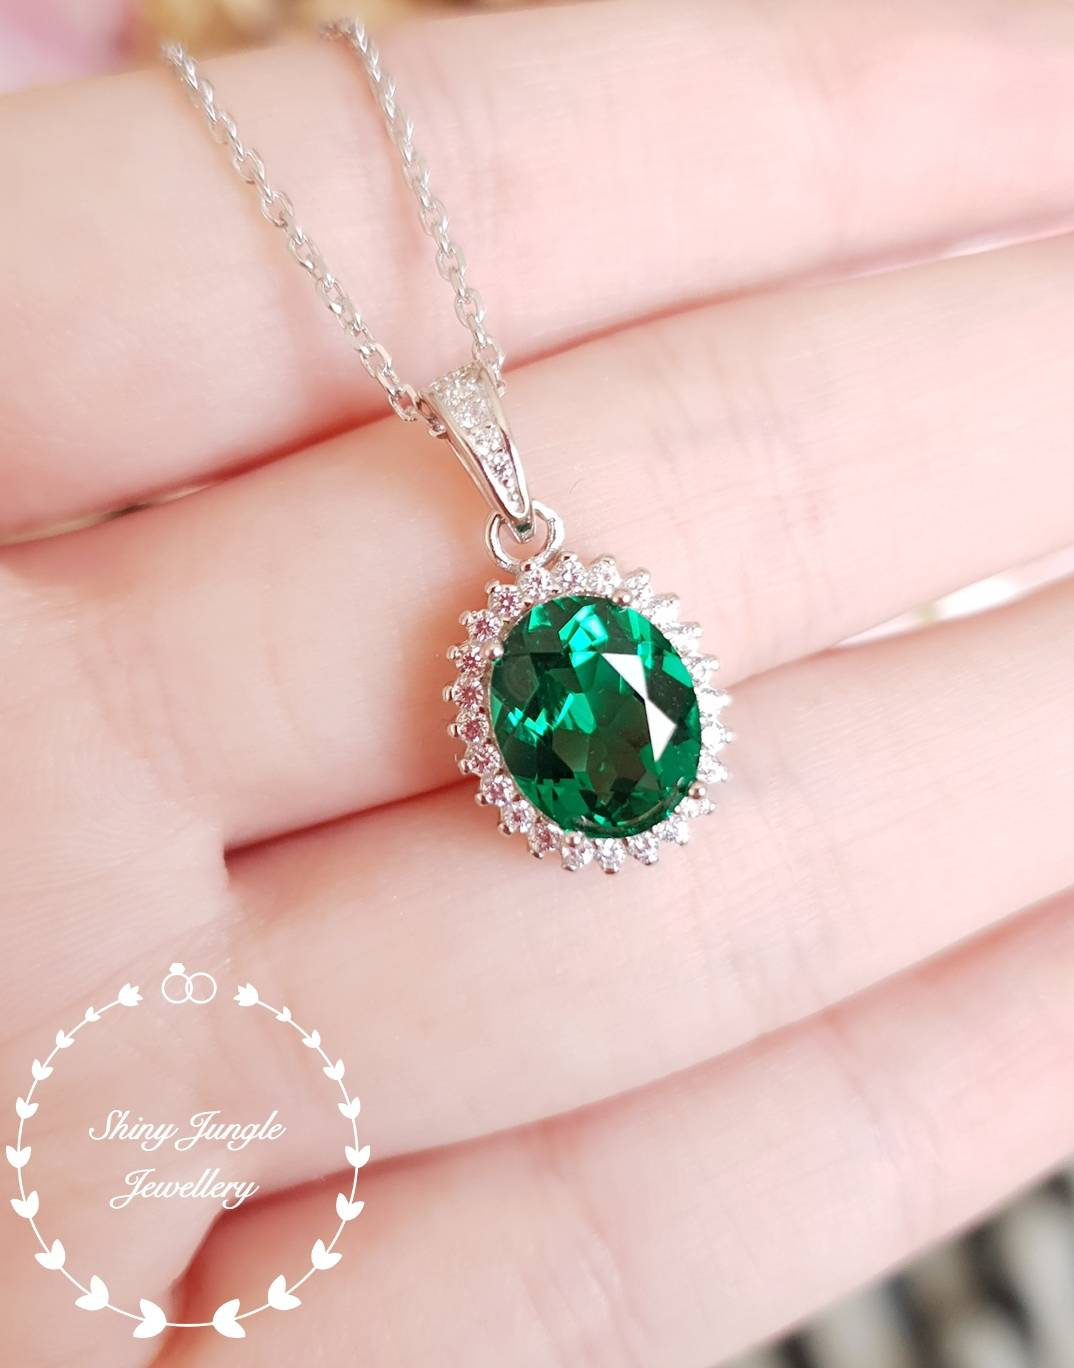 Halo Emerald Pendent With Chain, Lab Vivid Green Emerald, Solitaire Throughout Most Current Oval Sparkle Halo Pendant Necklaces (View 8 of 25)